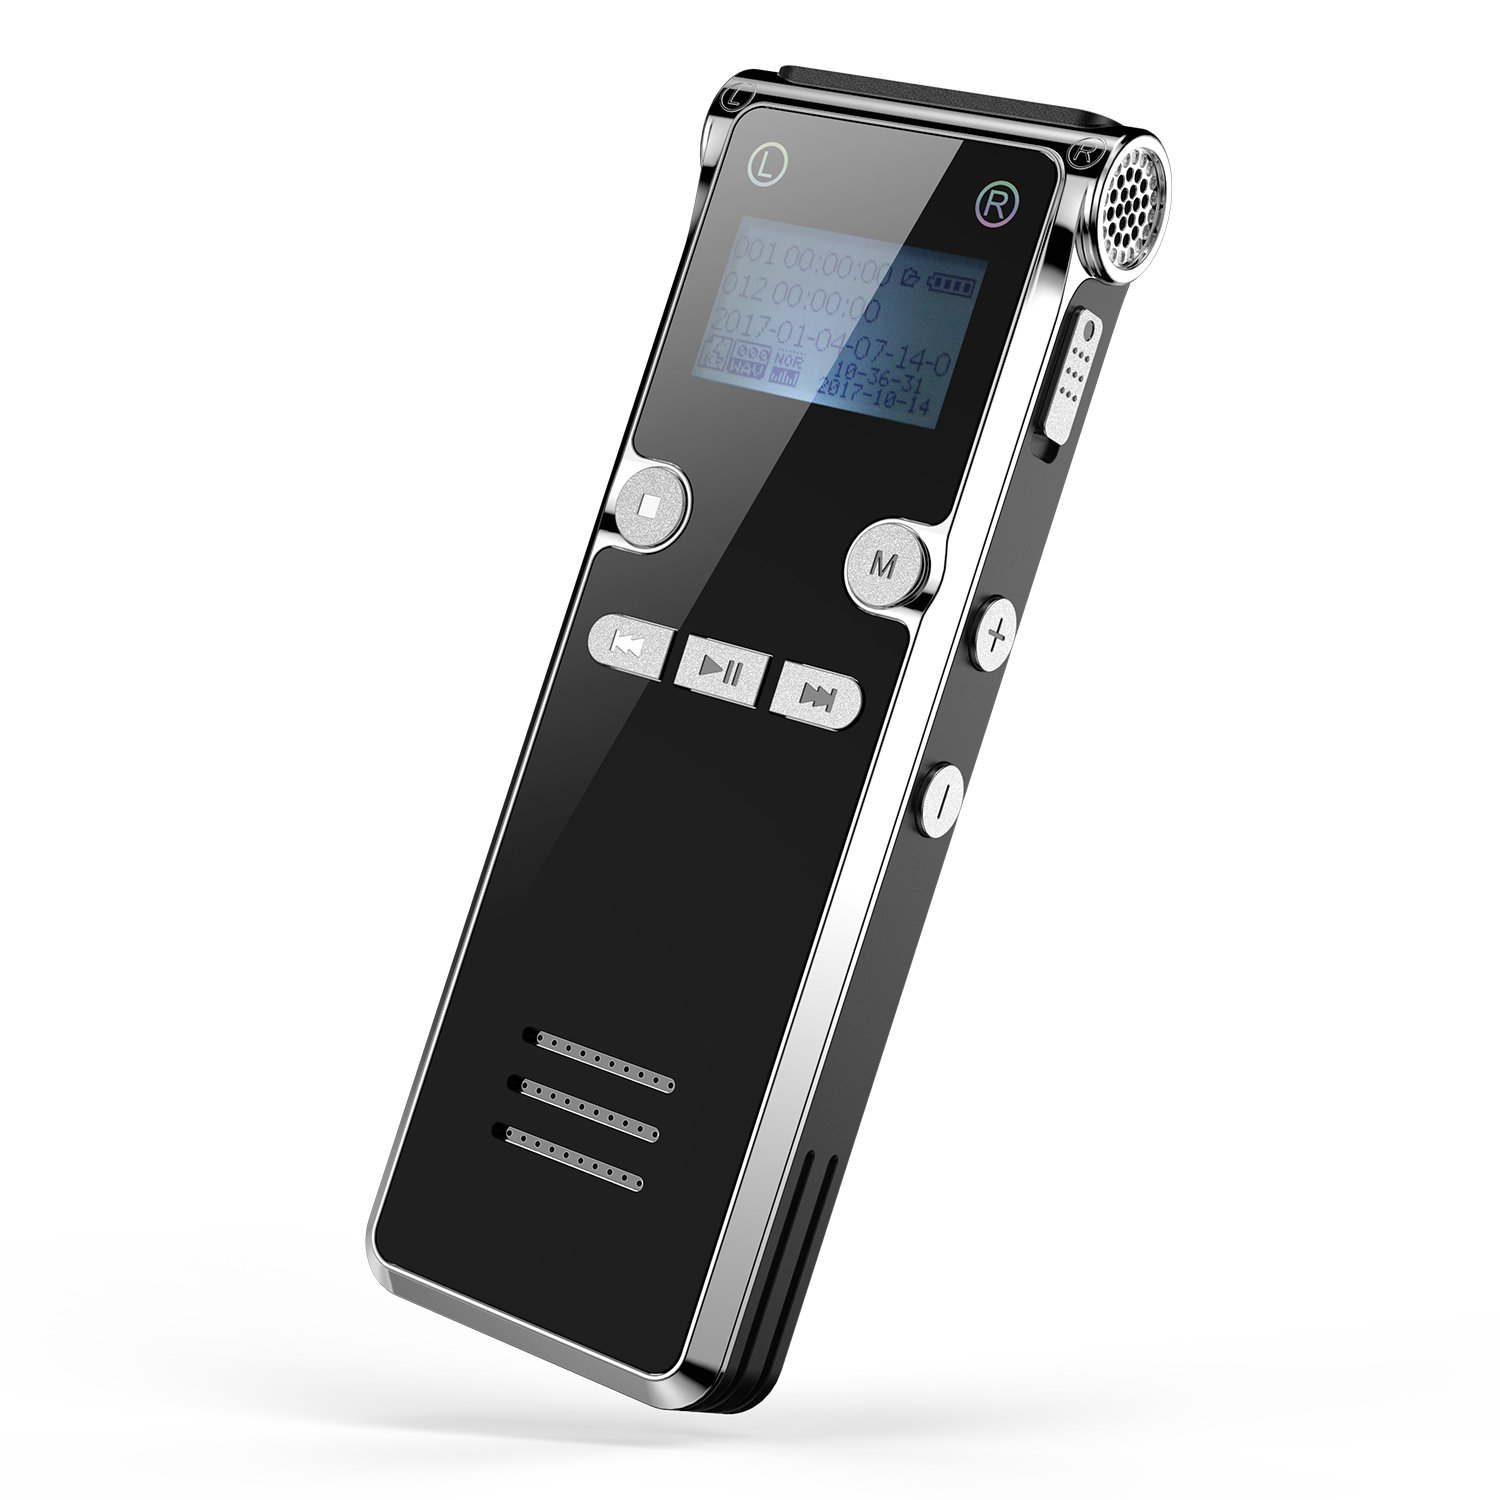 Digital Voice Recorder, Dr.meter 8GB Memory Audio Recorder Supports 32GB TF Card with 15m/49.2ft Recording Distance and MP3 Function Sound Recorder for Meeting Live or Class